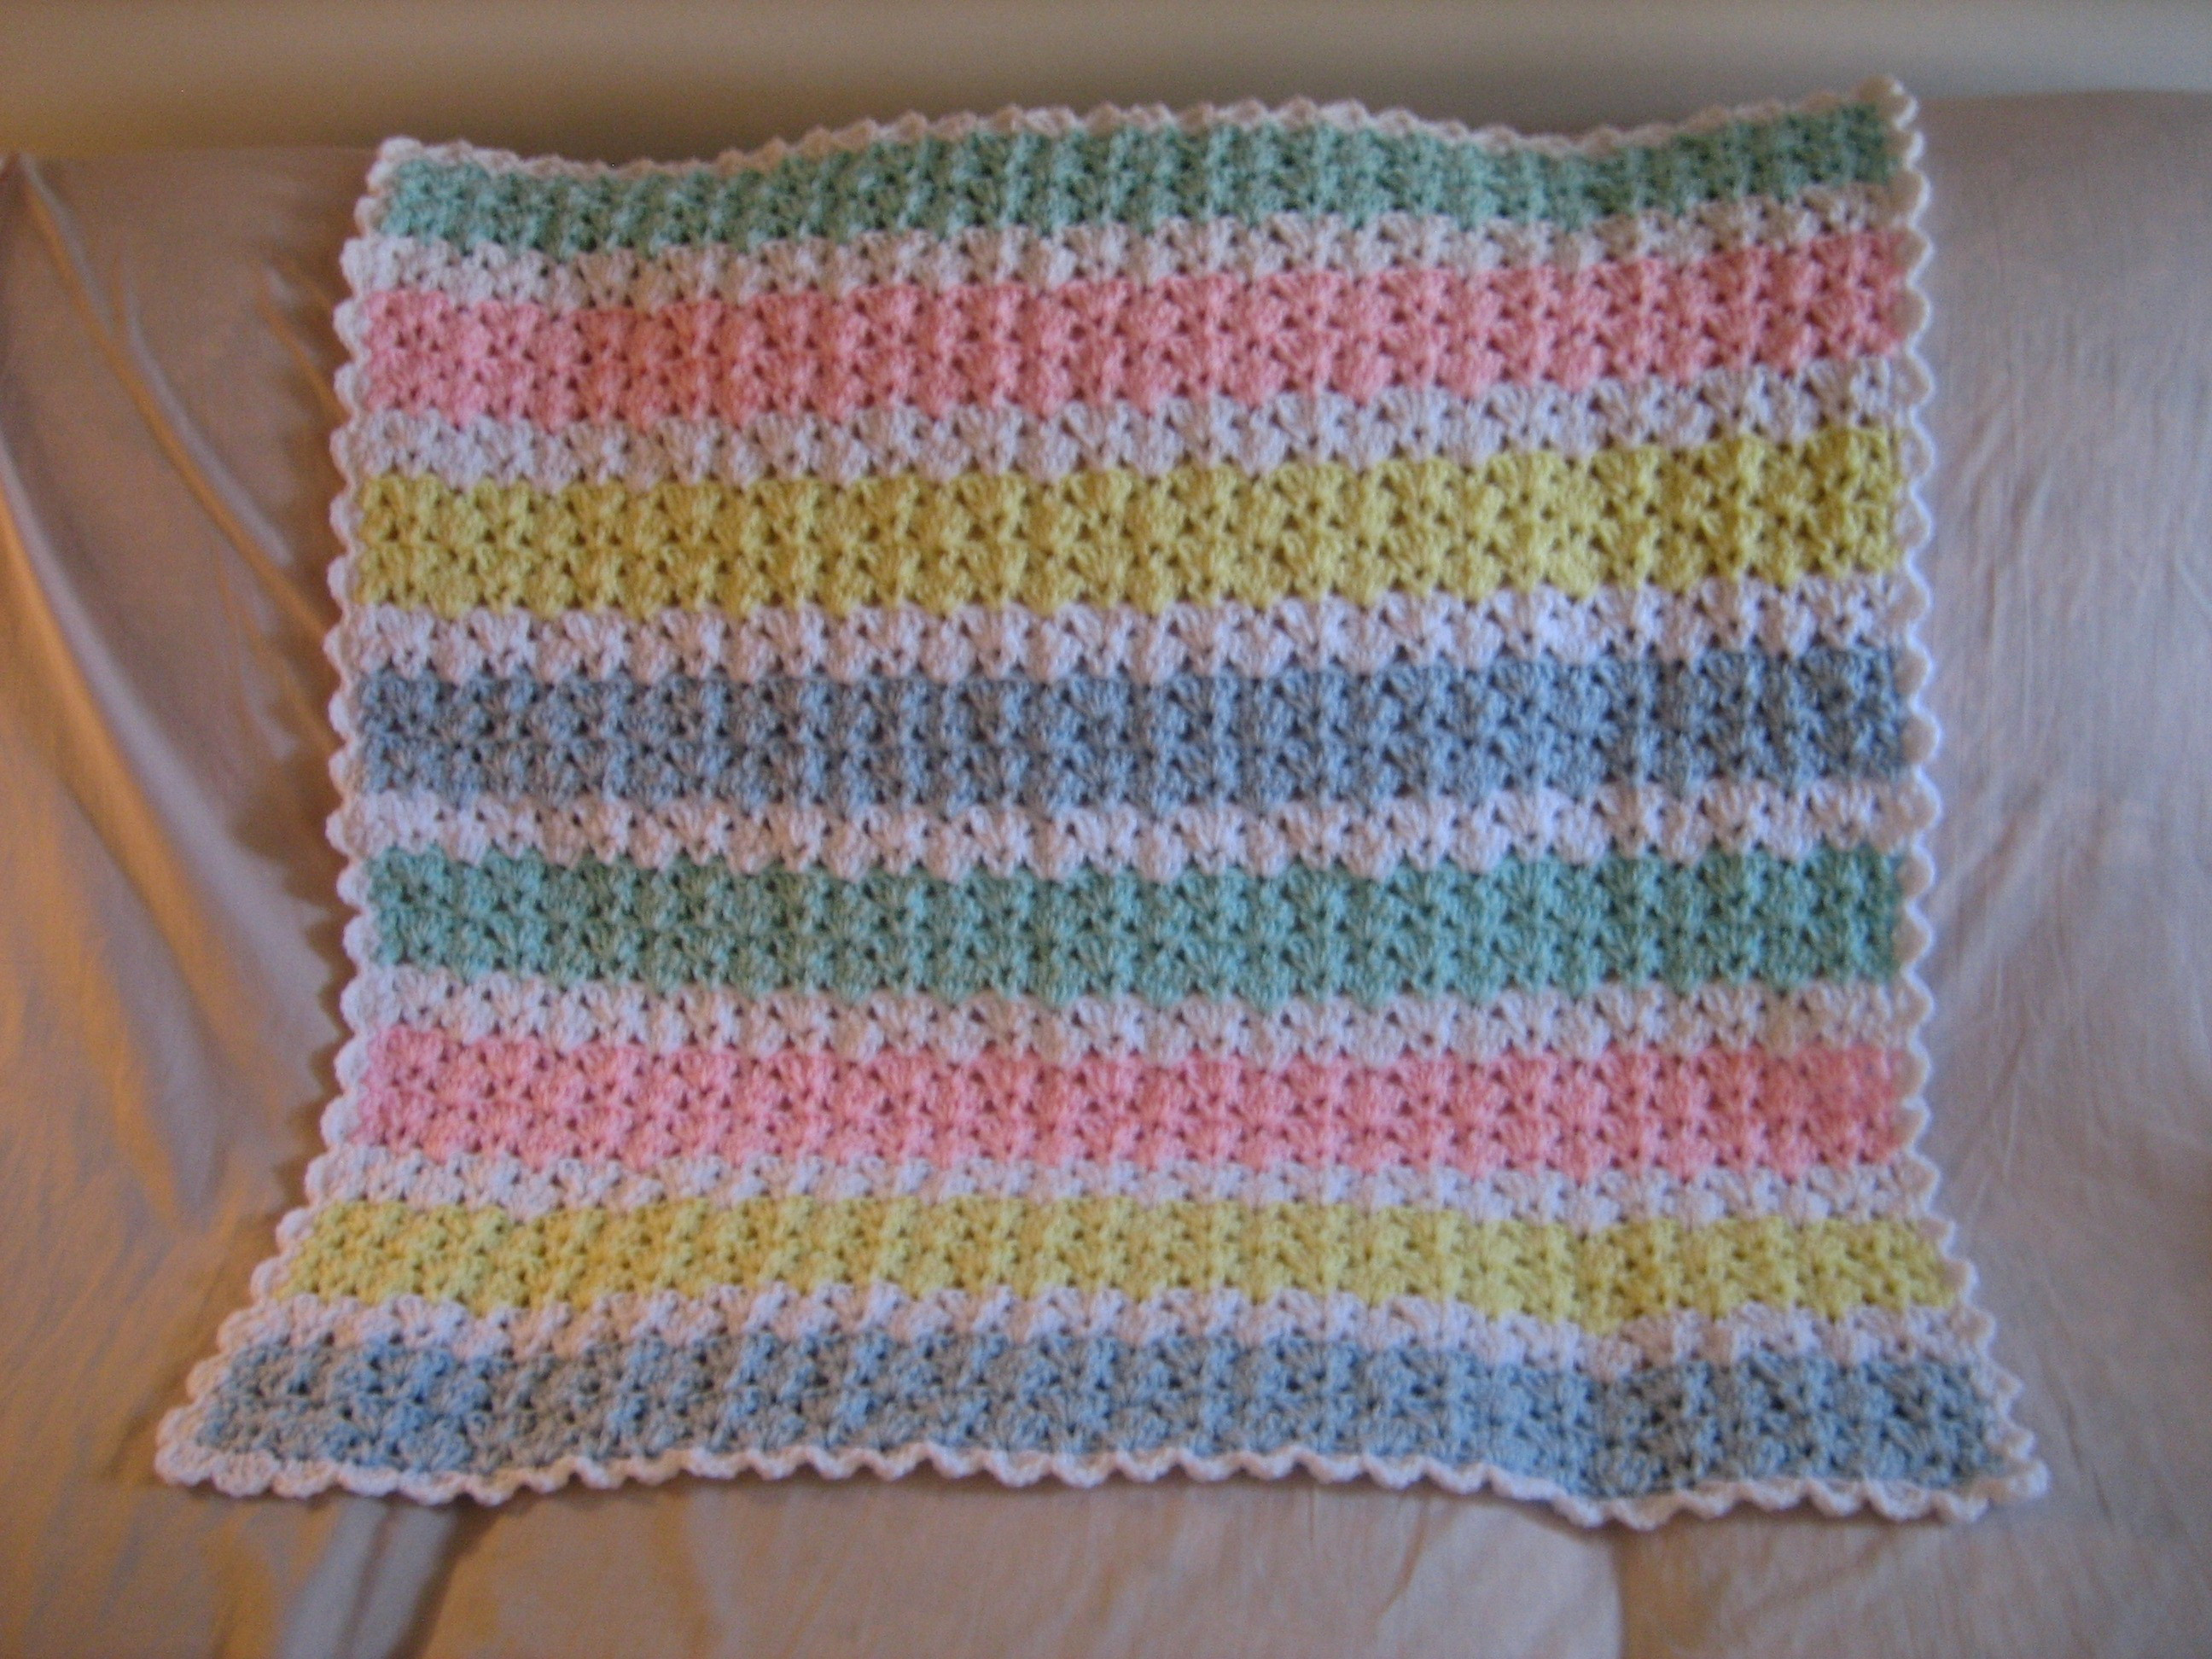 Free Baby Afghan Patterns Fresh Free Knitting Patterns for Baby Blankets Afghans Of Attractive 40 Ideas Free Baby Afghan Patterns